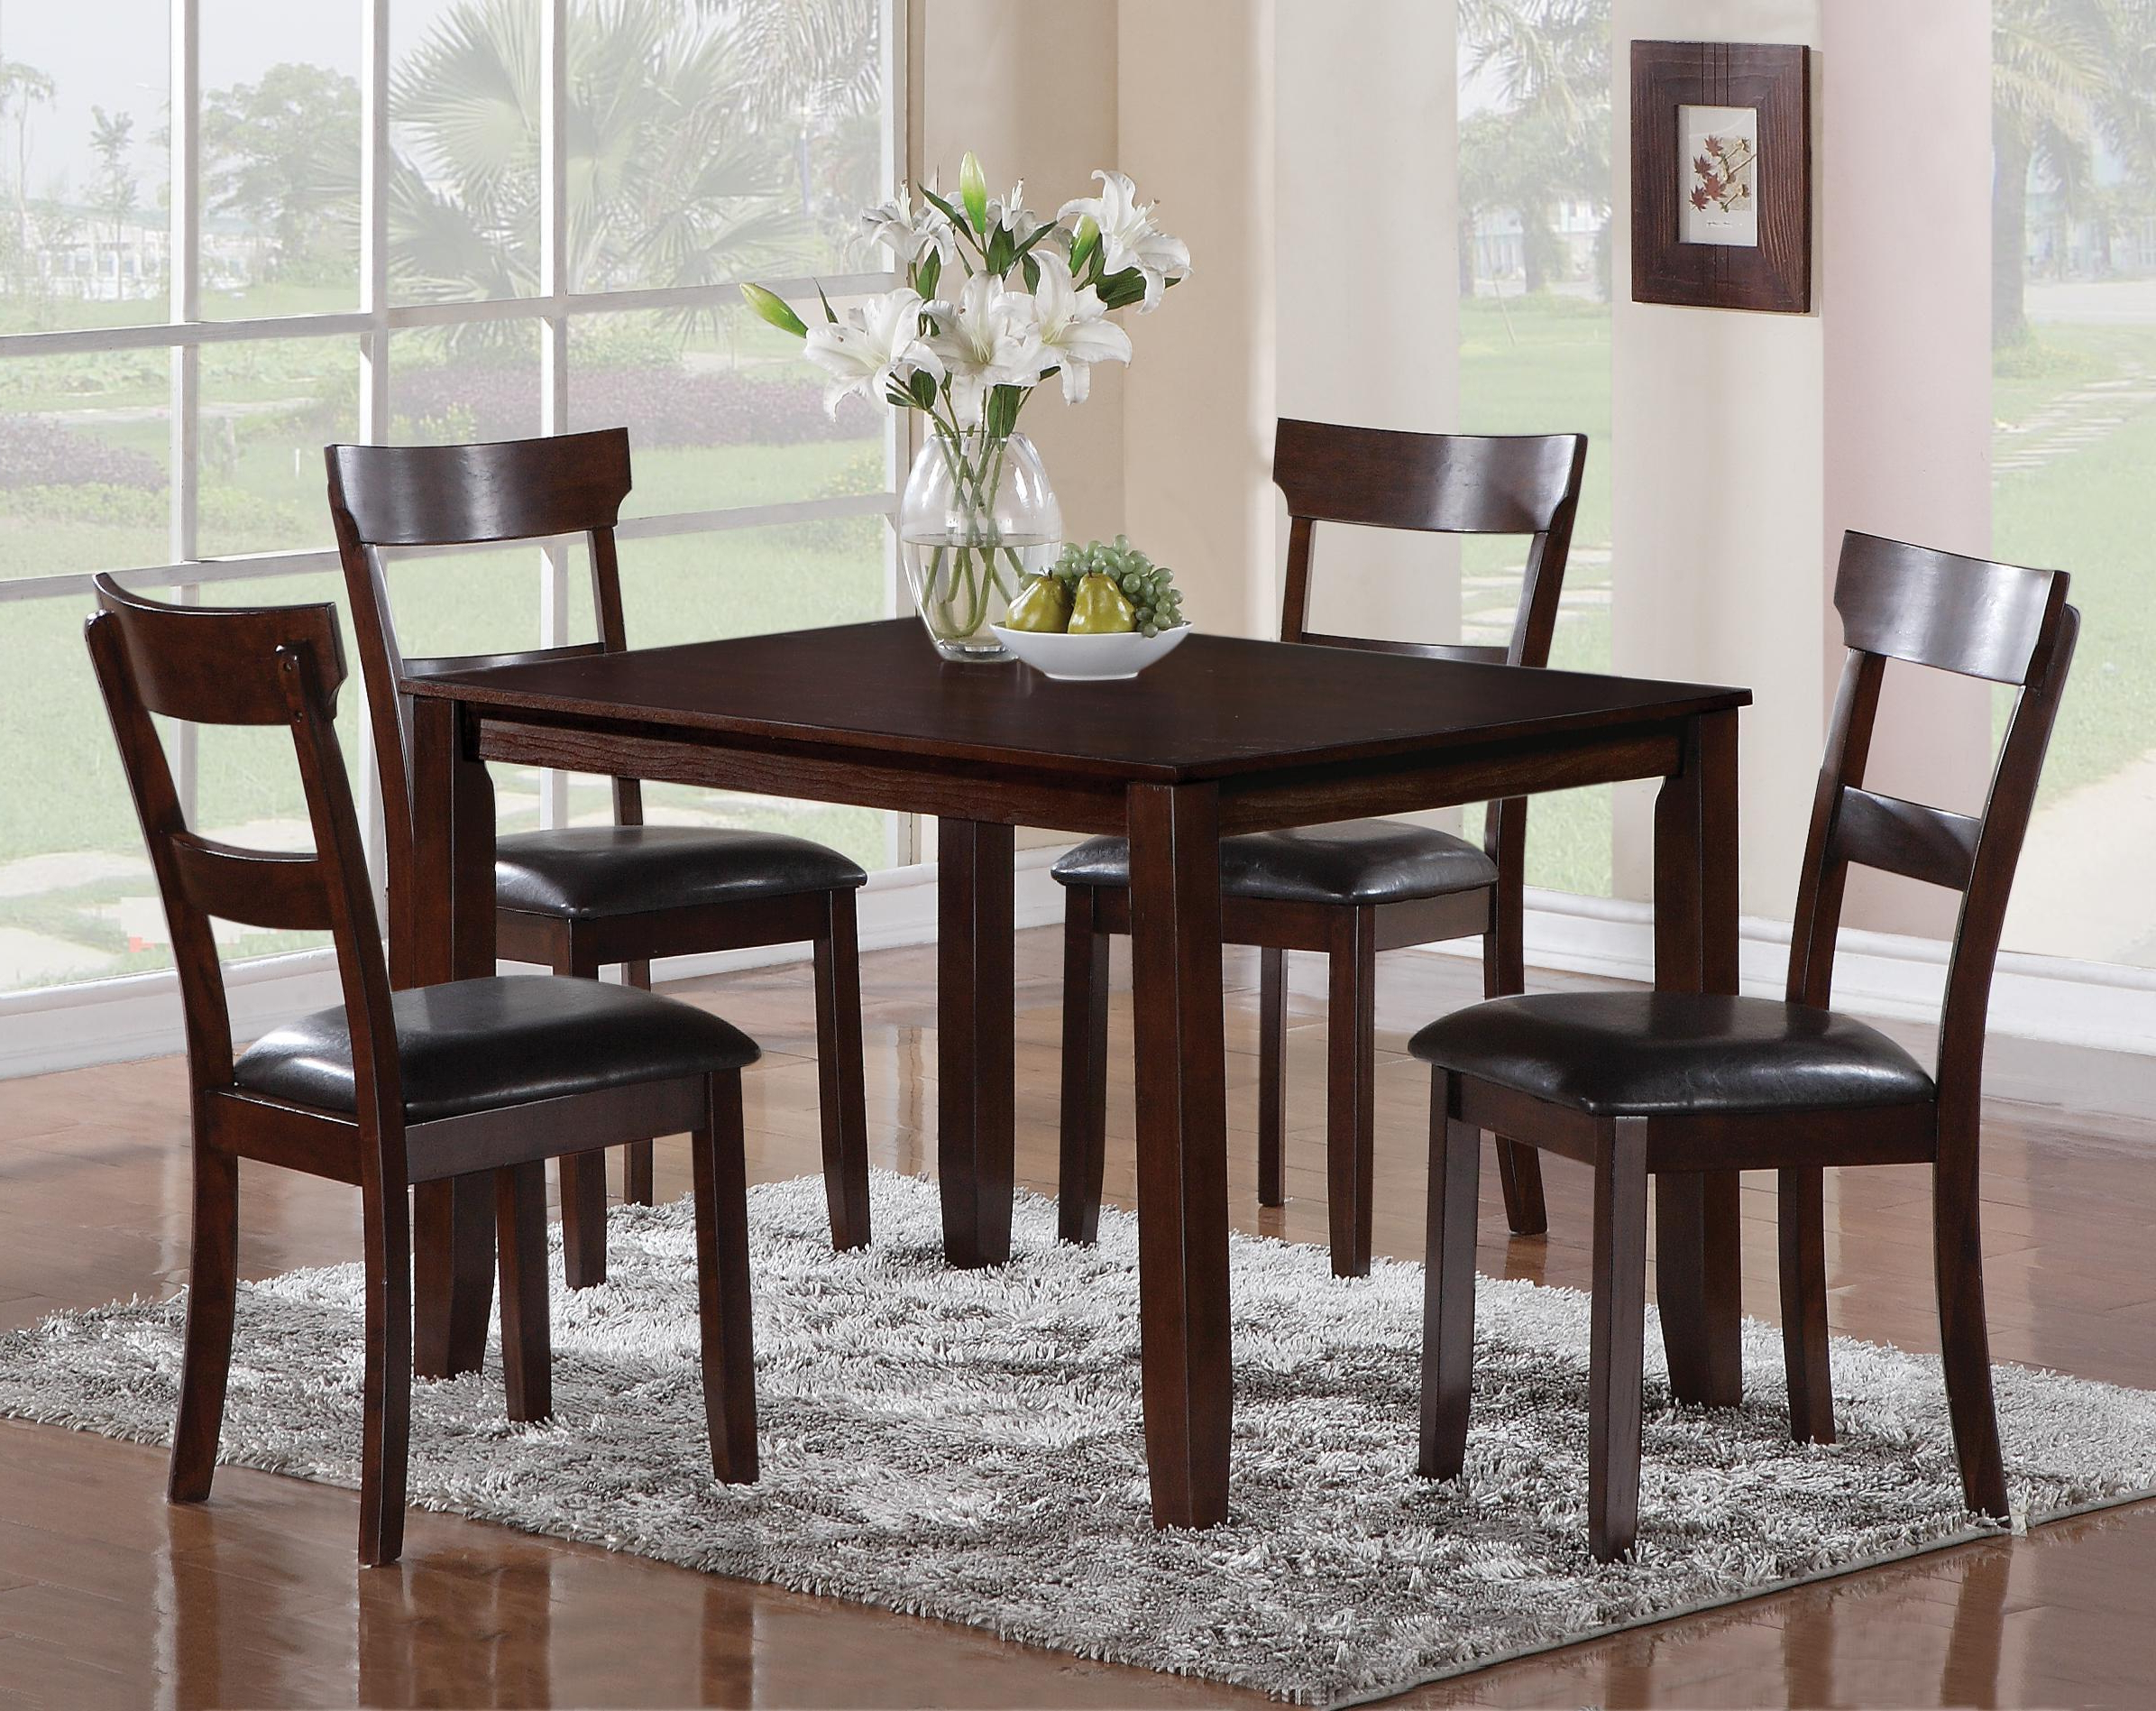 Cargo 5 Piece Dining Sets Intended For Most Recently Released Crown Mark Henderson 2254Set 5 Piece Dining Table And Chair Set (View 7 of 25)